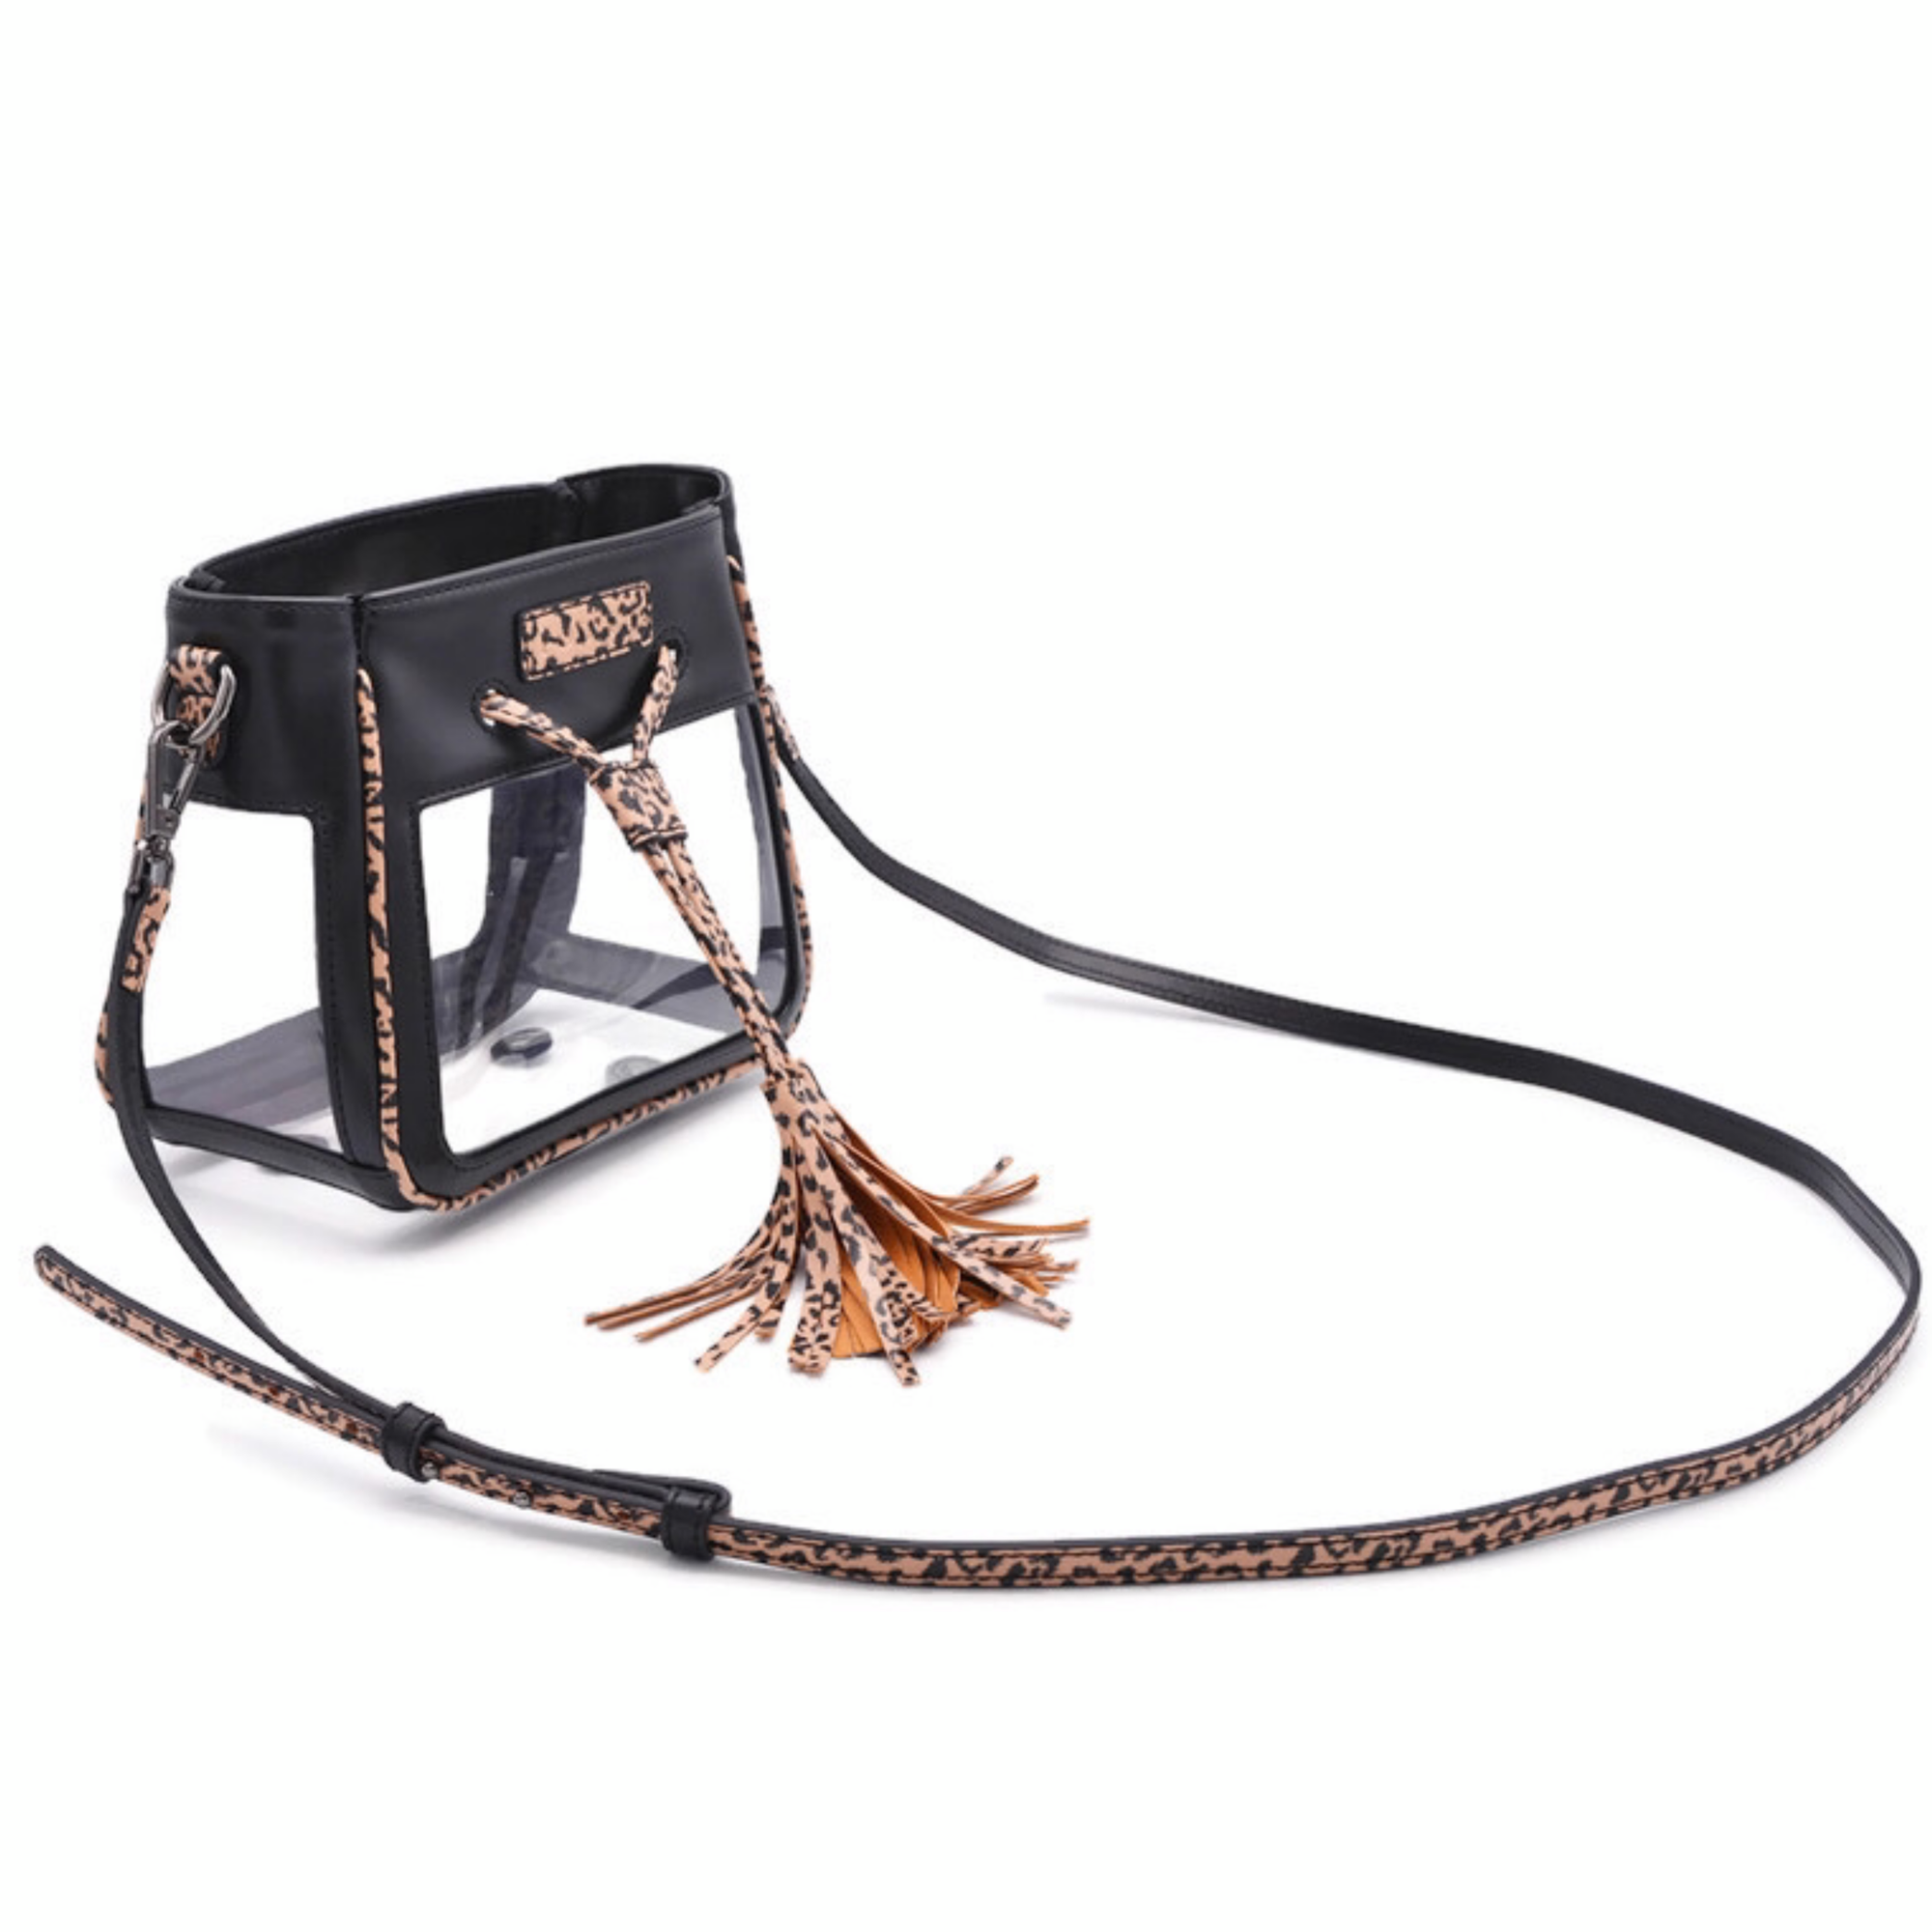 The Mini Bare Bucket | Cheetah Cub Combo POLICY Handbags